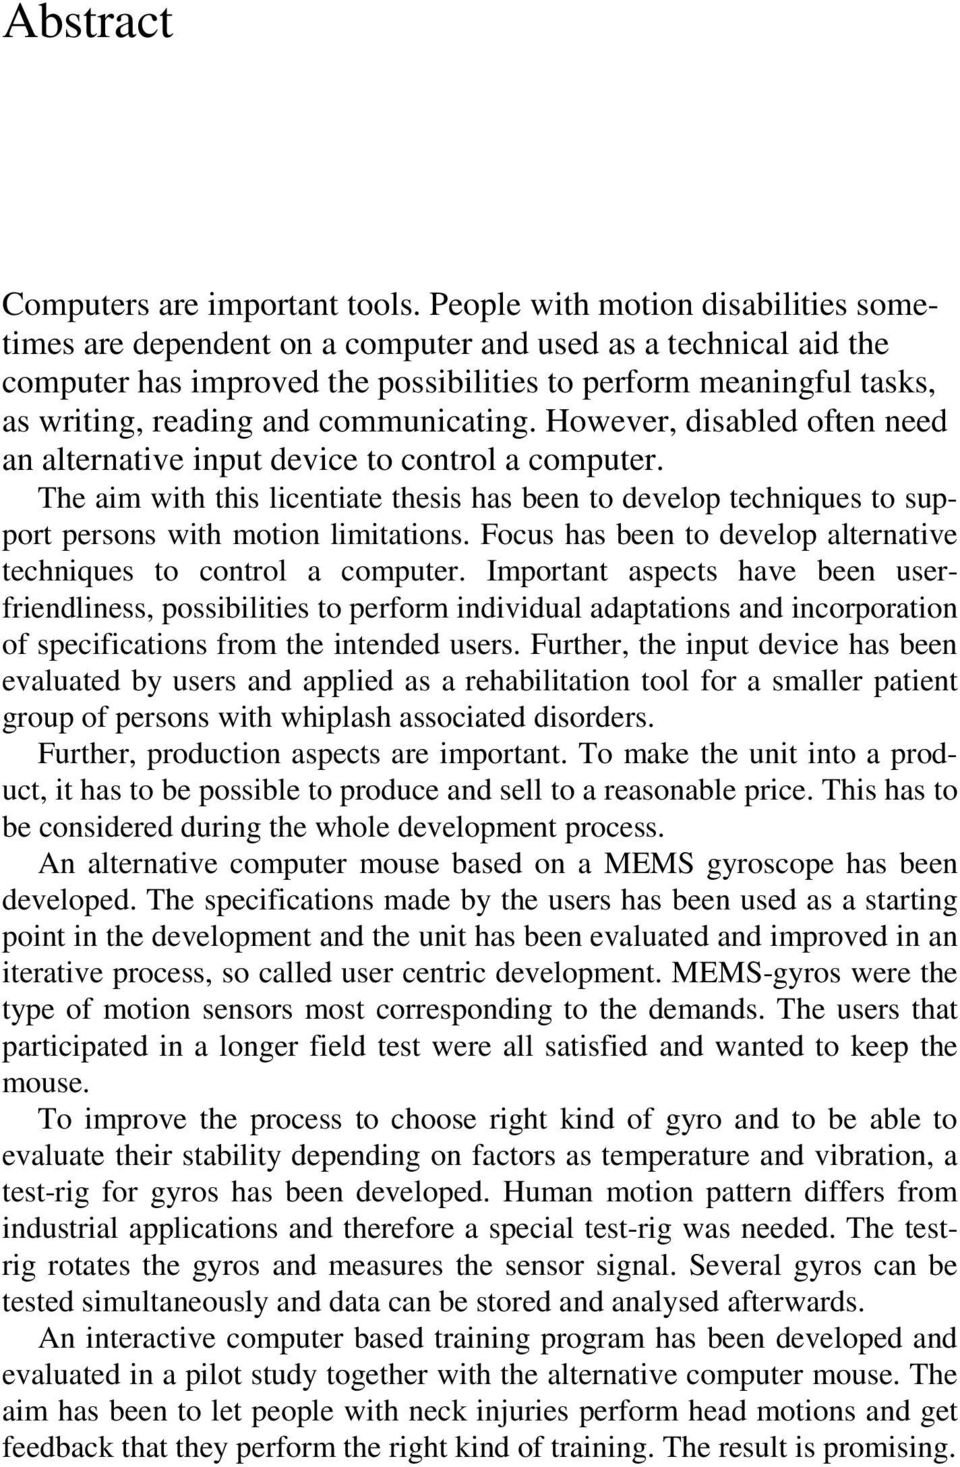 communicating. However, disabled often need an alternative input device to control a computer.